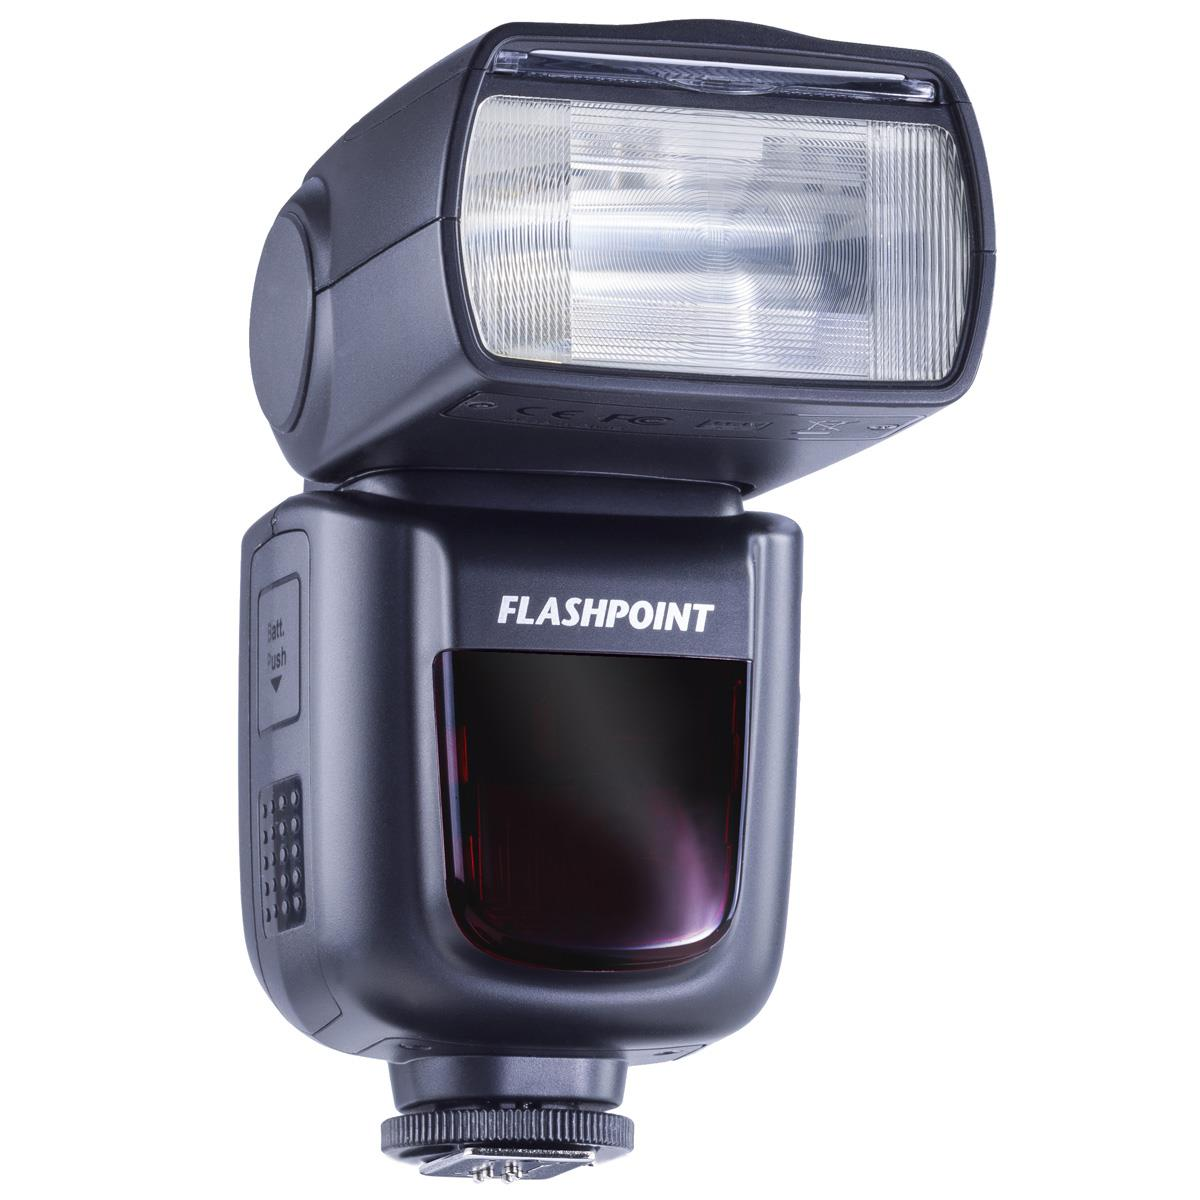 Flashpoint Speedlight - this flash is a lithium battery powered flash that delivers long lasting consistent results and is only 25% the price of it's Sony, Nikon and Canon counterparts.  What's even better is that it has a receiver built in that works with the R2 transmitter (the one used for the Flashpoint Xplor 600) meaning you can either put the flash directly on your camera, or you can use it as an off camera flash with the R2 transmitter!  There are manual and TTL versions of this flash.  This is an incredible value, well built, and you don't need to burn through your AA batteries like traditional flashes.  Jason uses the manual version of the speedlight as he doesn't use TTL in his work.